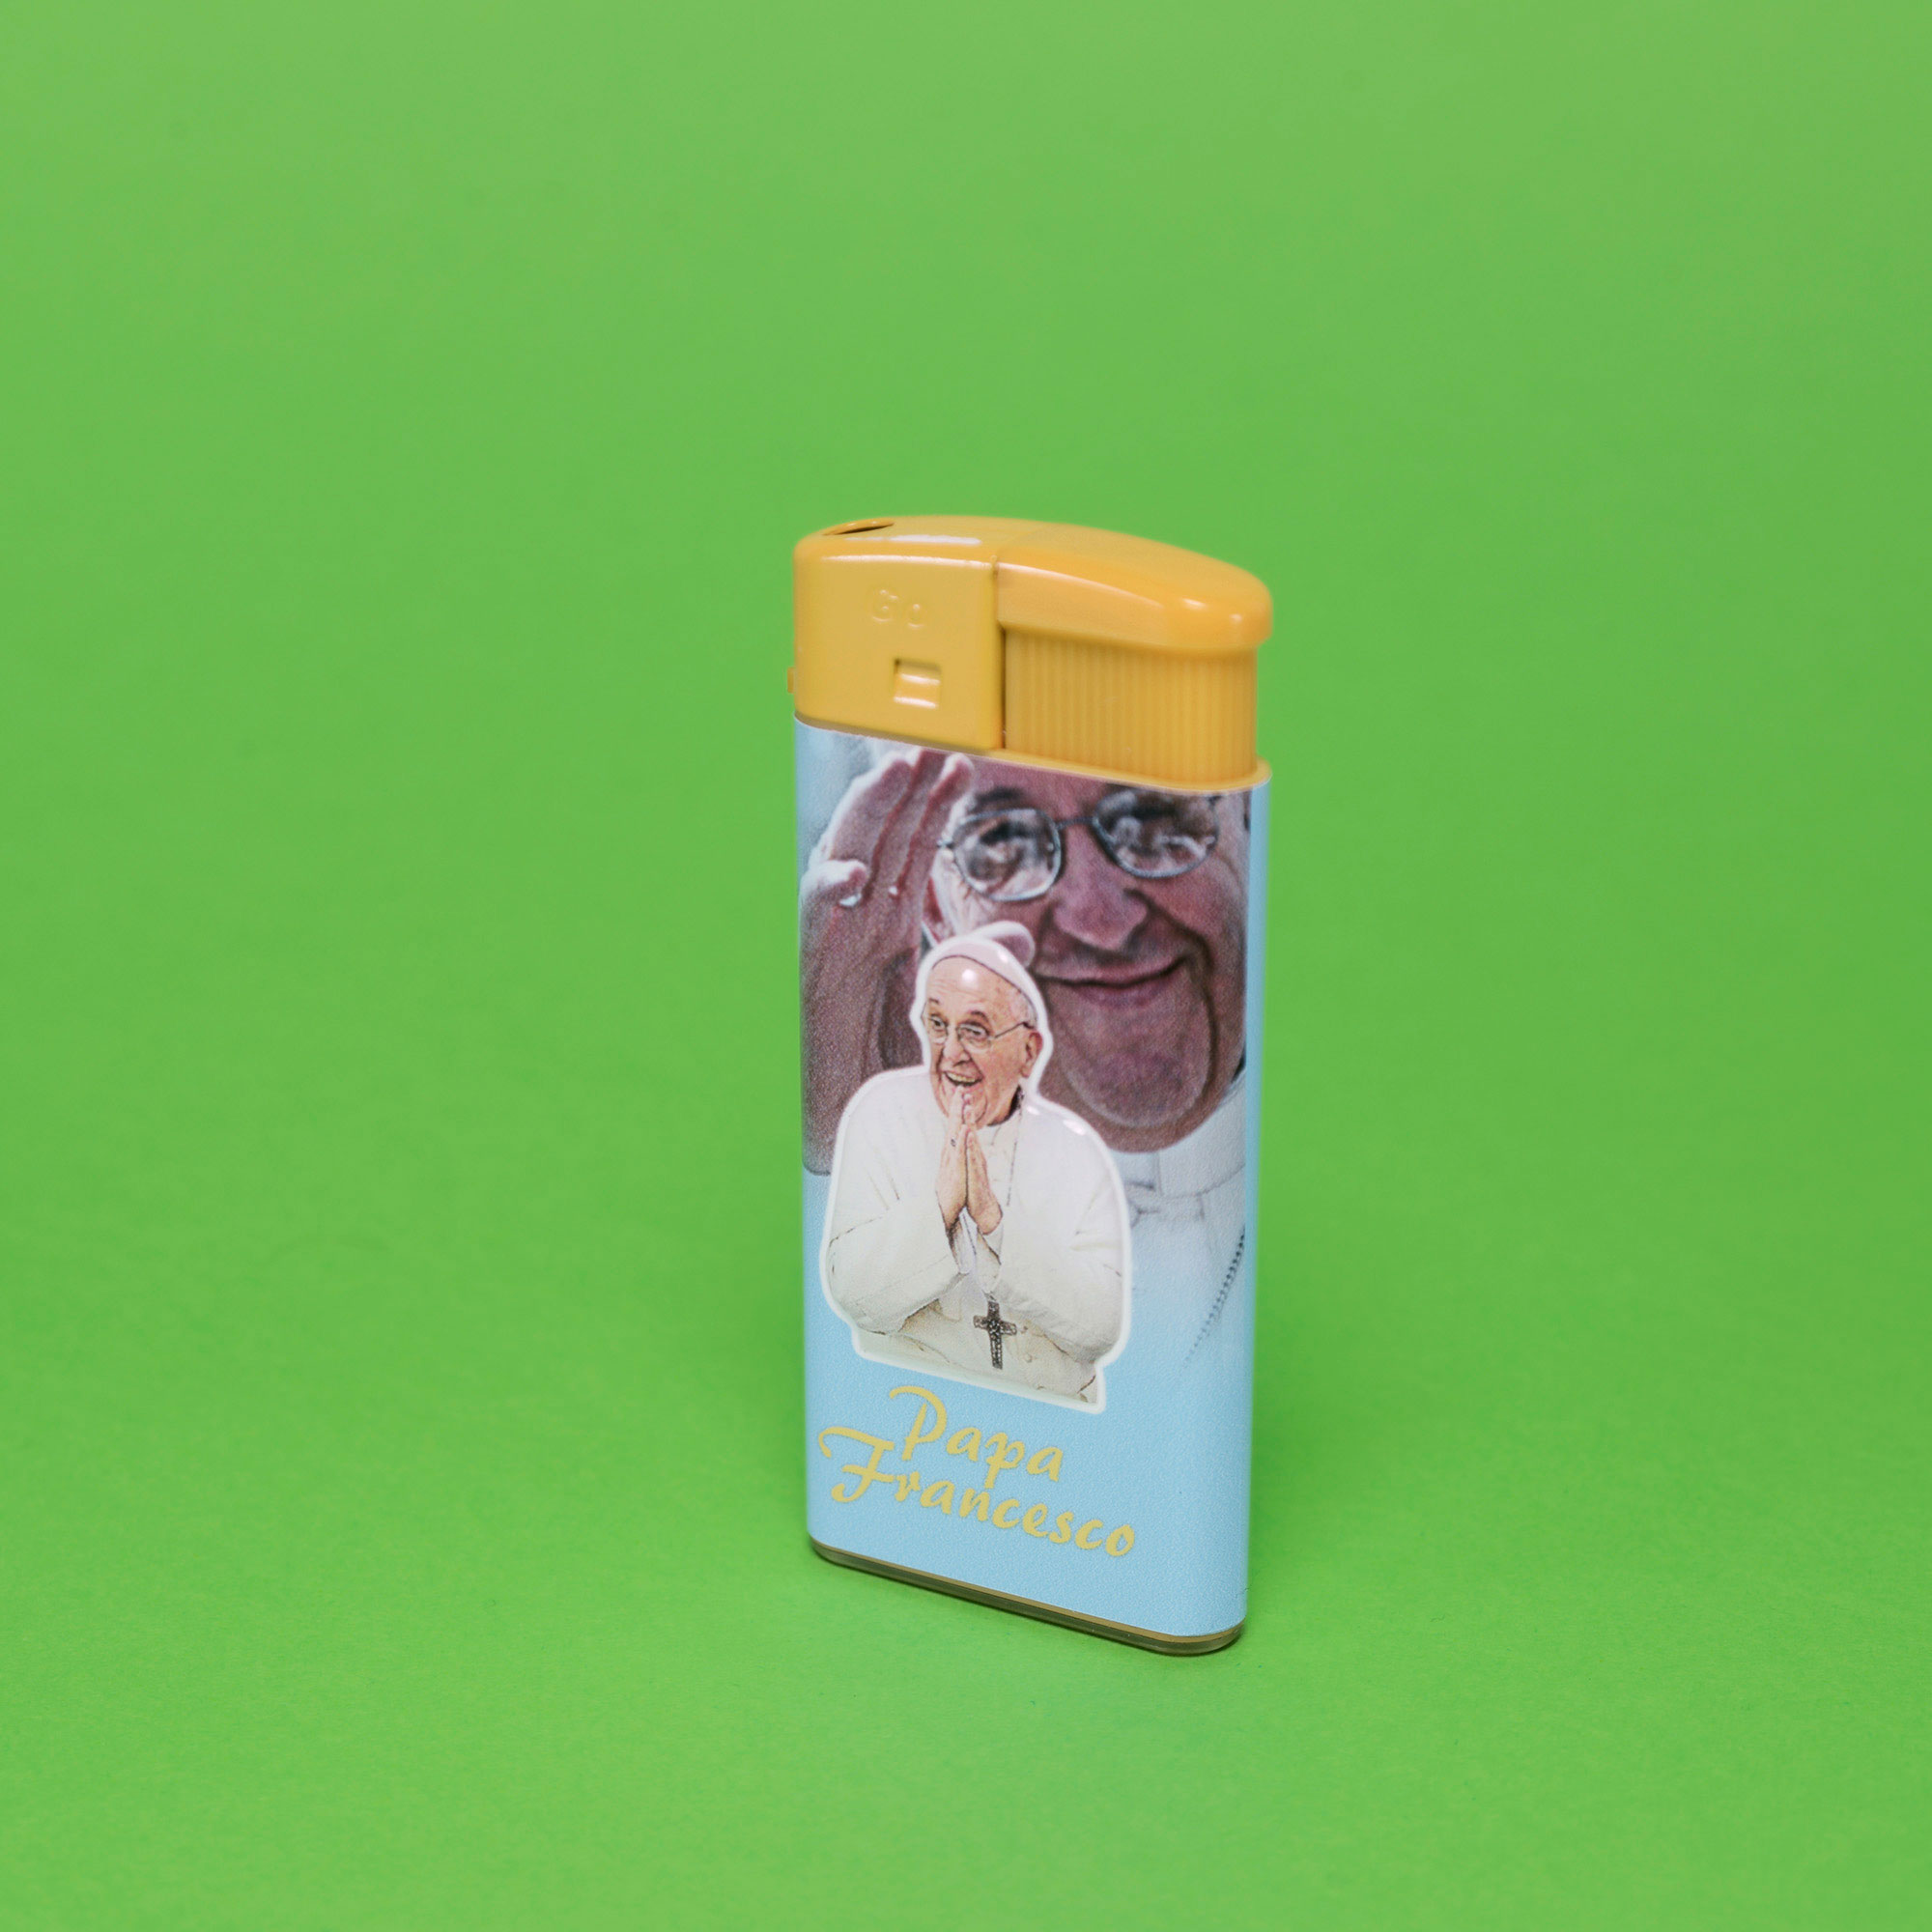 Pope Francis's lighter.